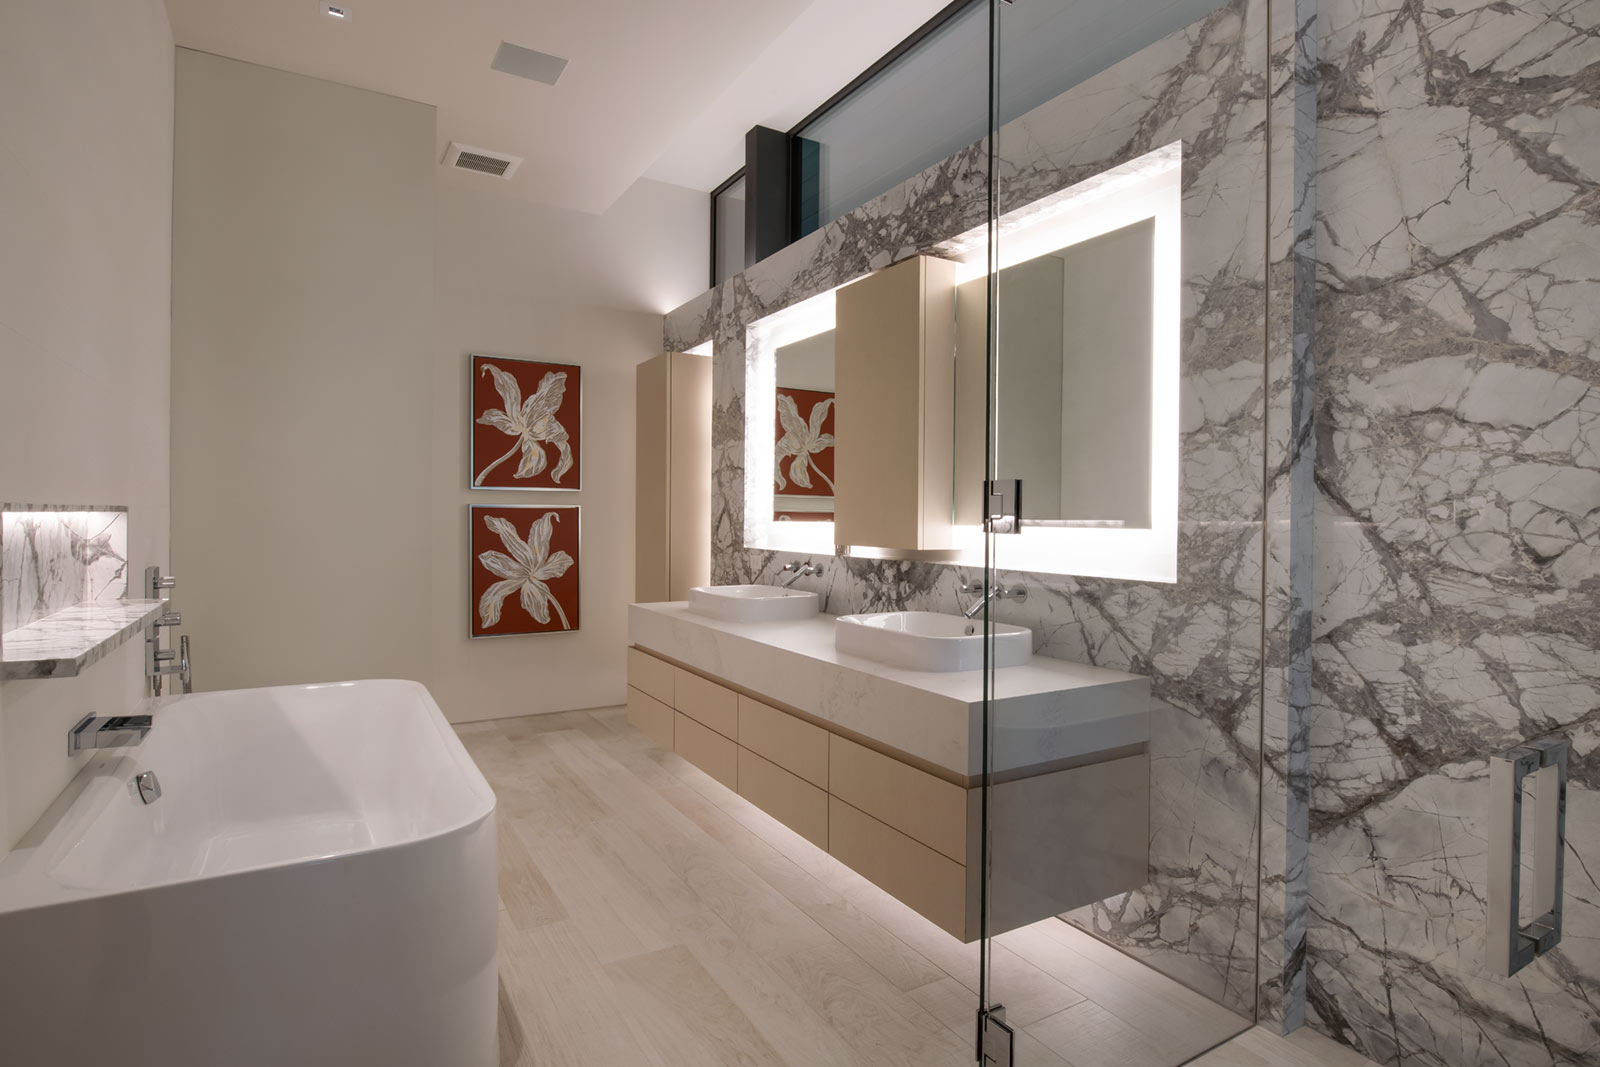 165 FOREST ROAD VAIL COLORADO GUEST BATHROOM 2 ULTRA MODERN